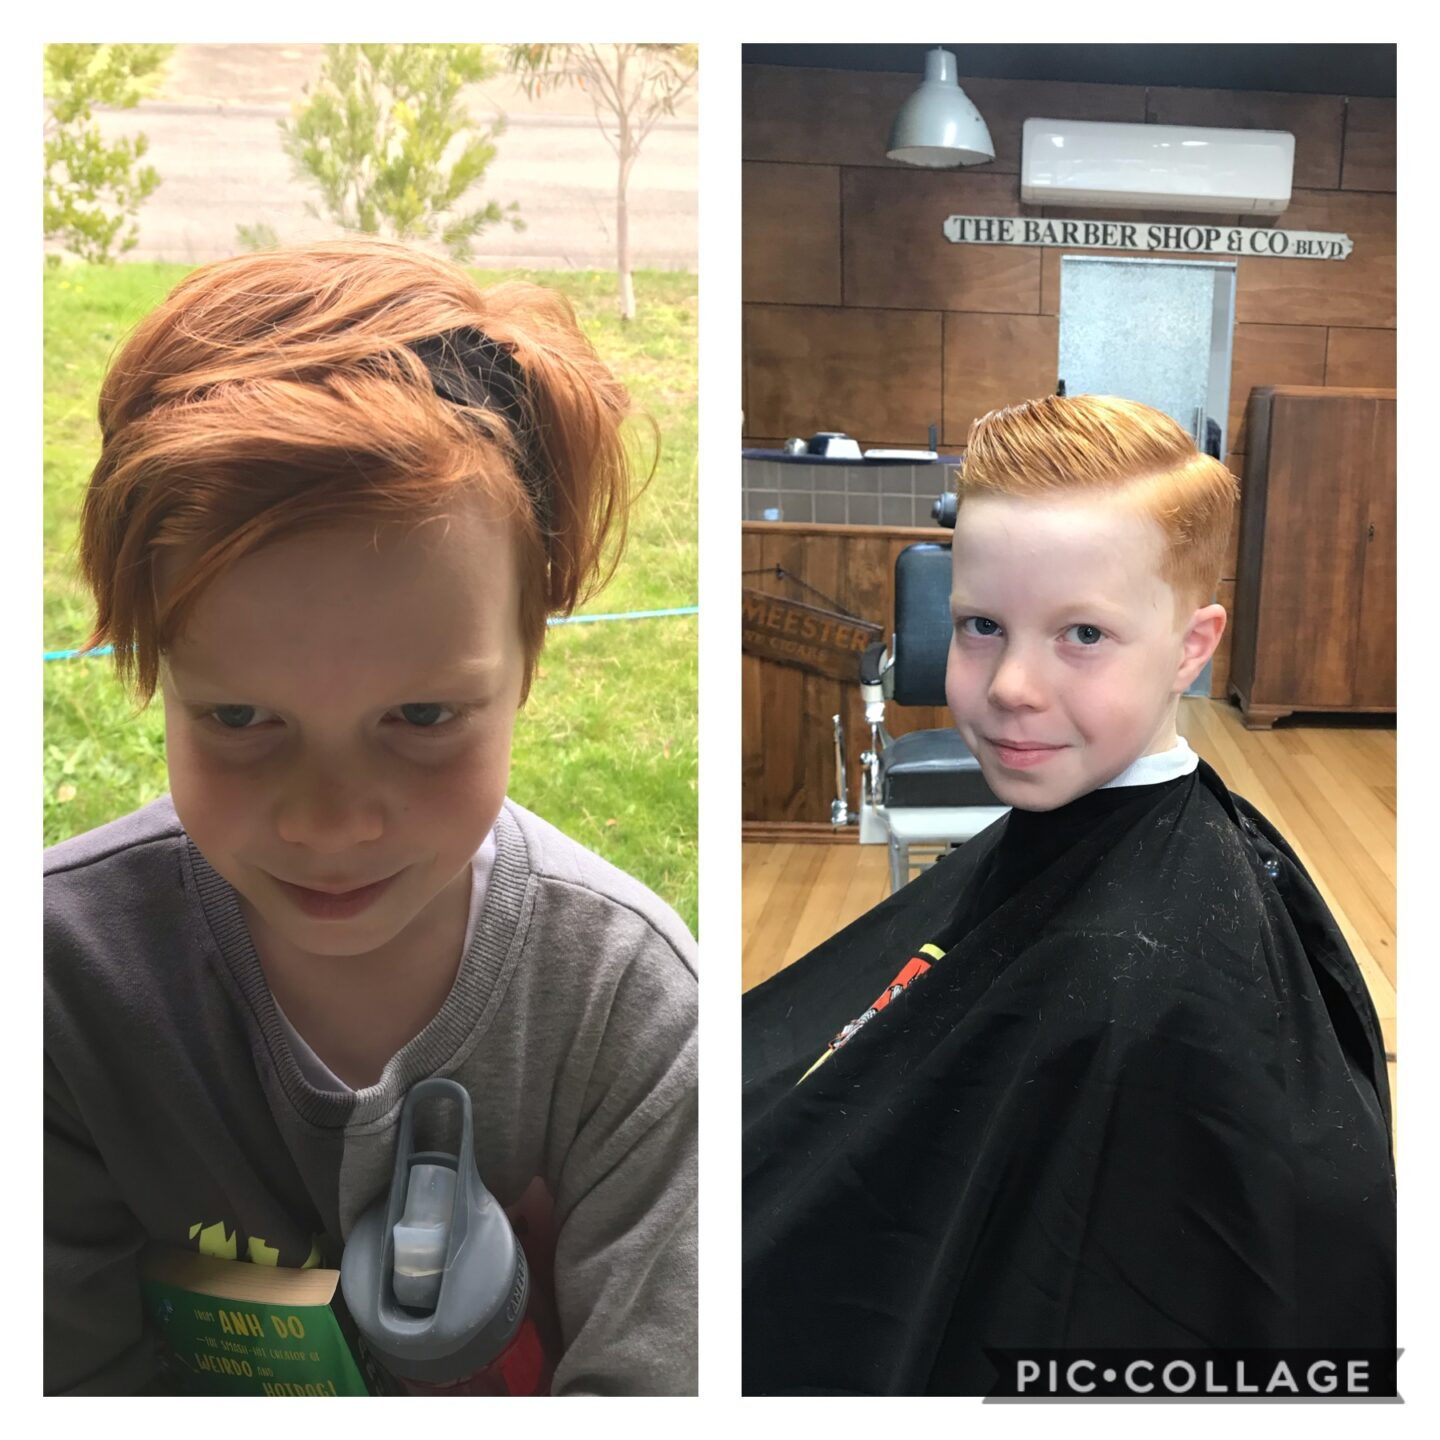 A slpit screen of a young person with long grown our hair on the left and in the barber chair on the right with a recent haircut.